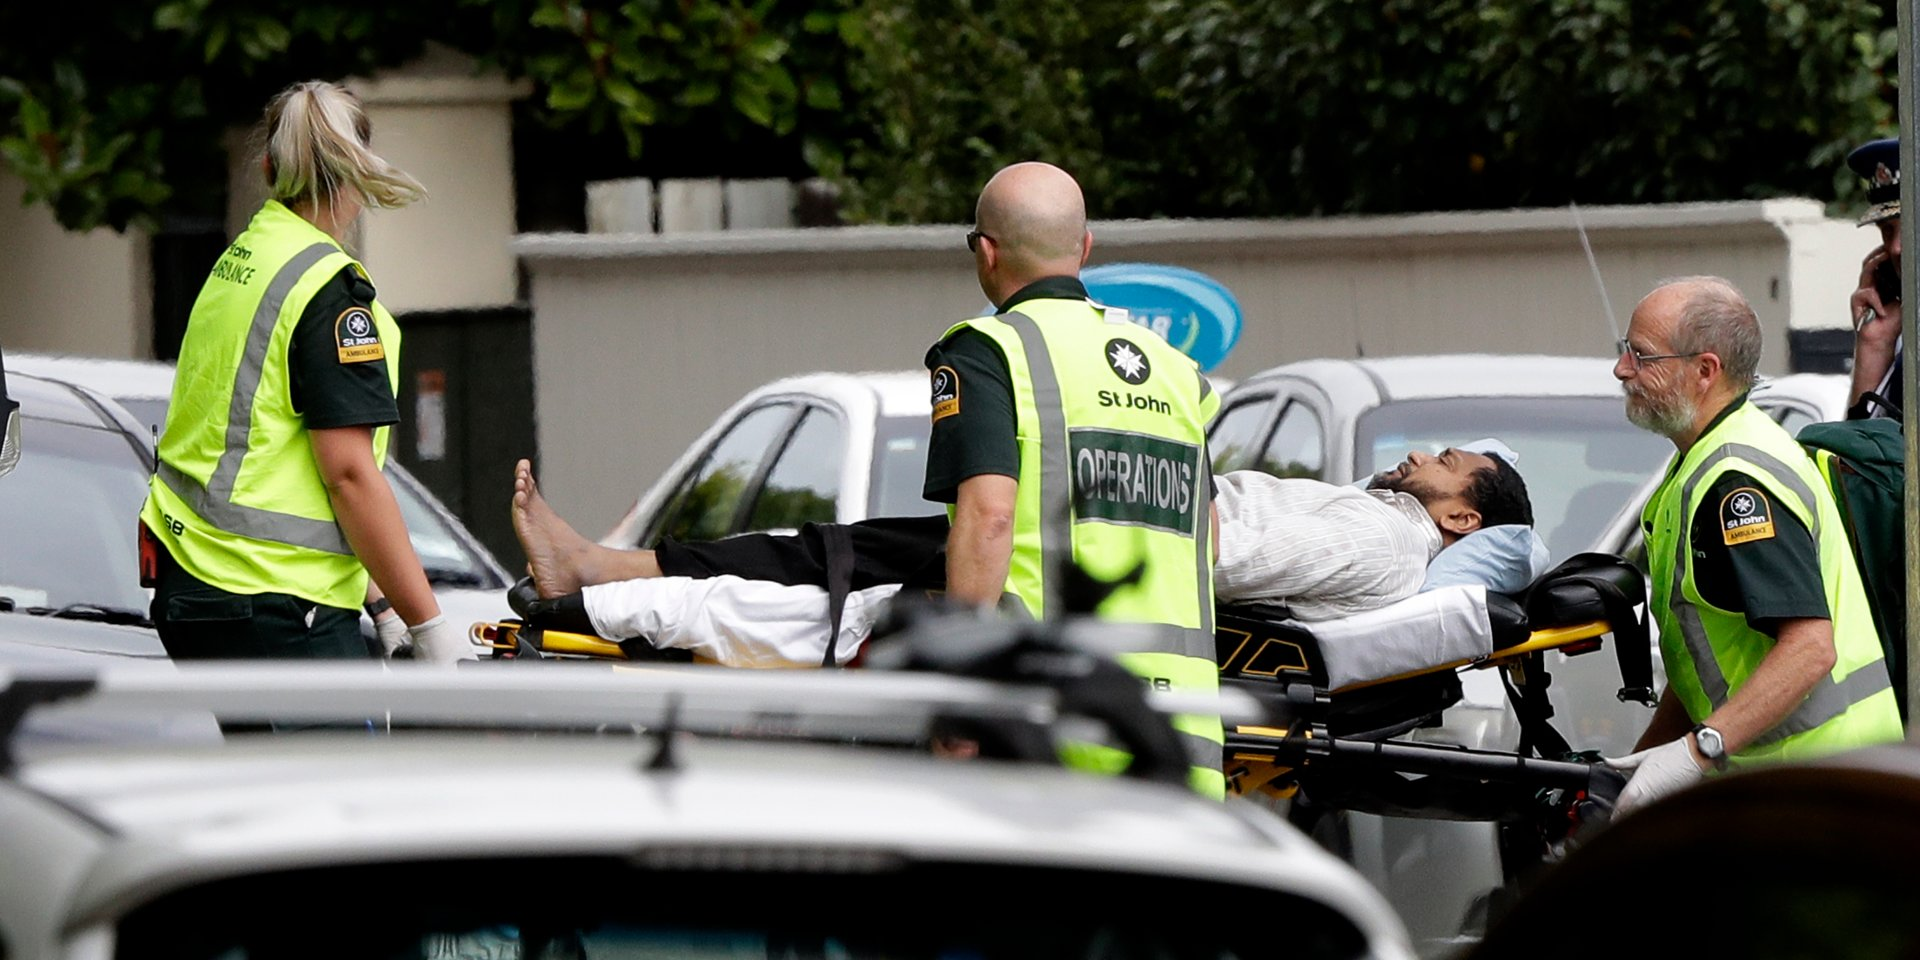 Video Penembakan New Zealand Update: PewDiePie Provides Statement Following New Zealand Shooting